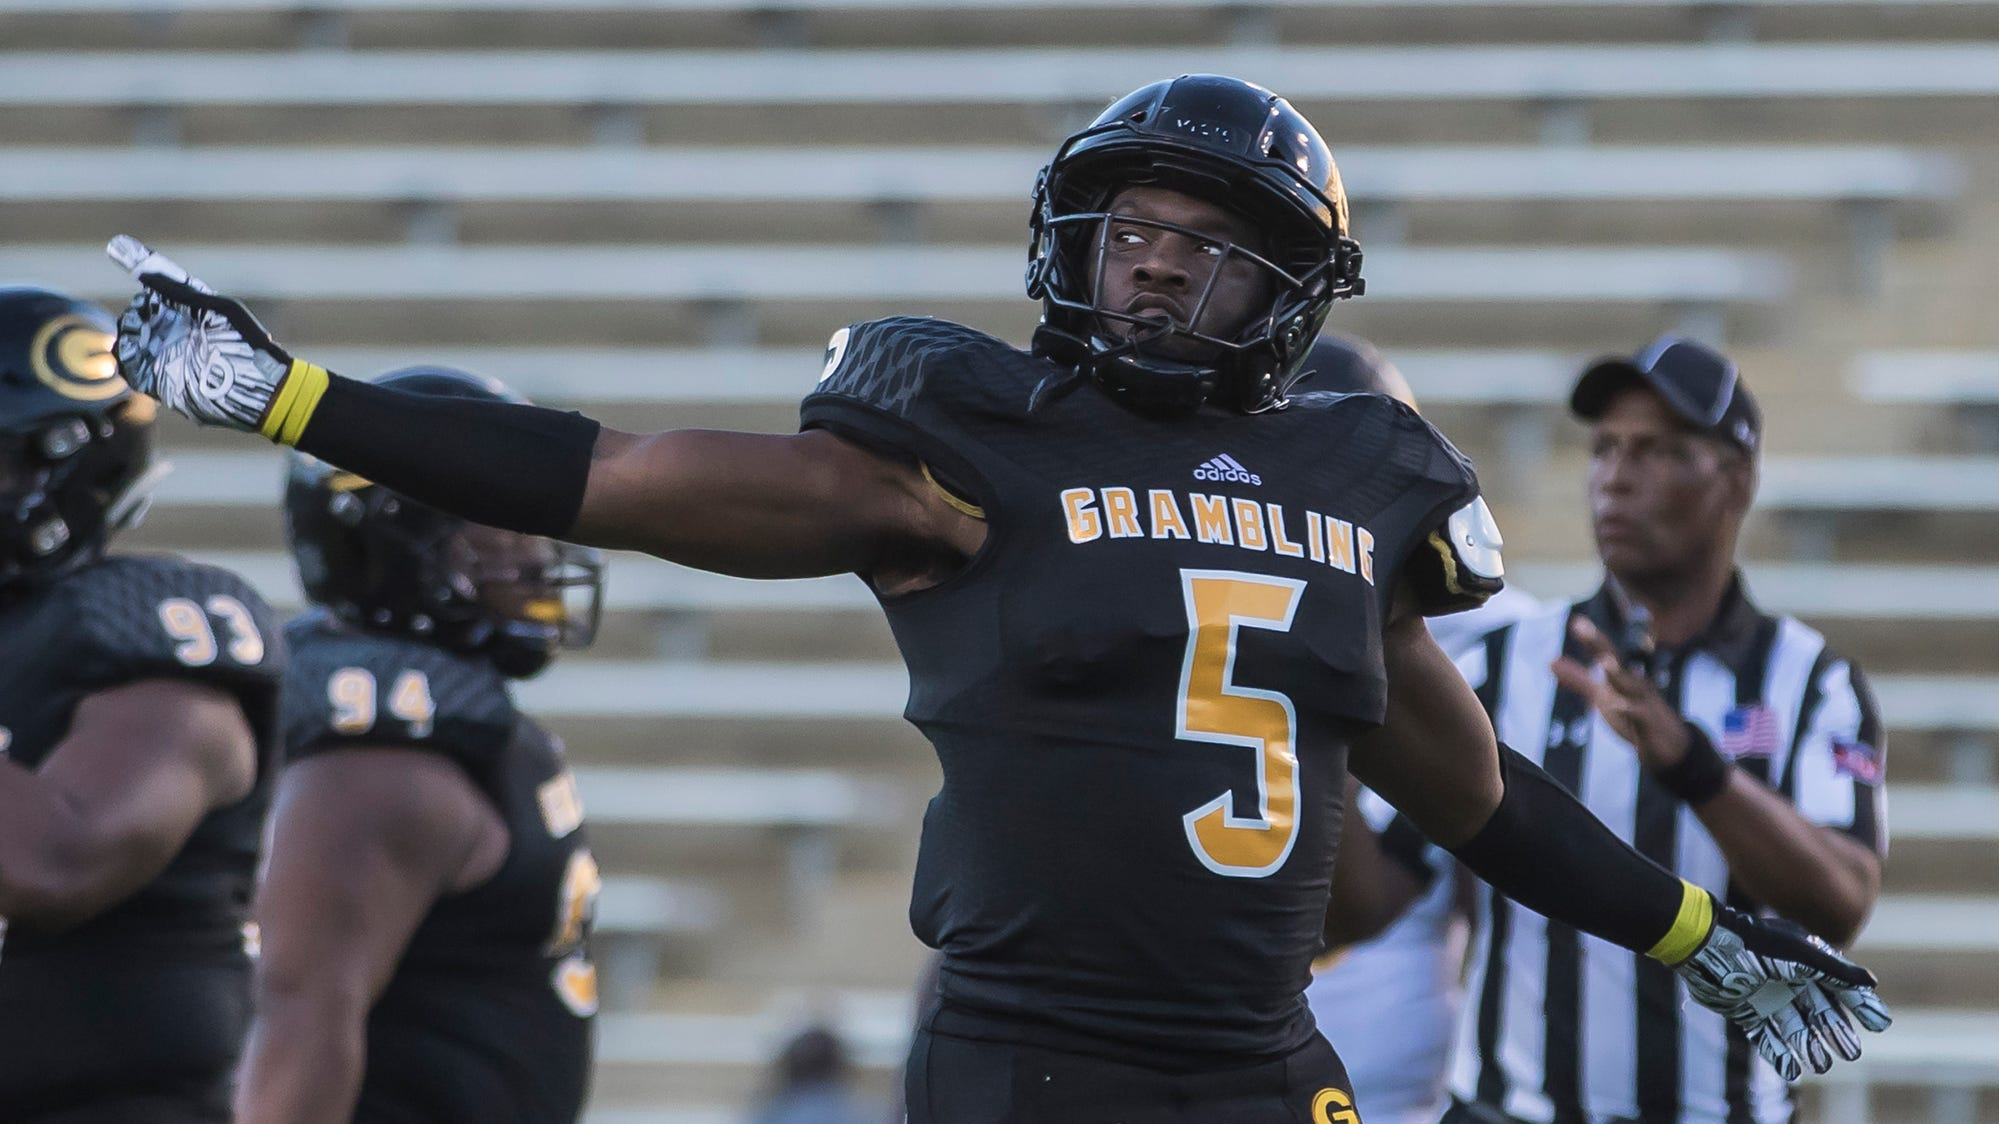 Grambling won 45-38 in a thrilling overtime winner against University of Arkansas Pine-Bluff at Eddie G. Robinson Memorial Stadium at Grambling State University in Grambling, La. on Oct. 27